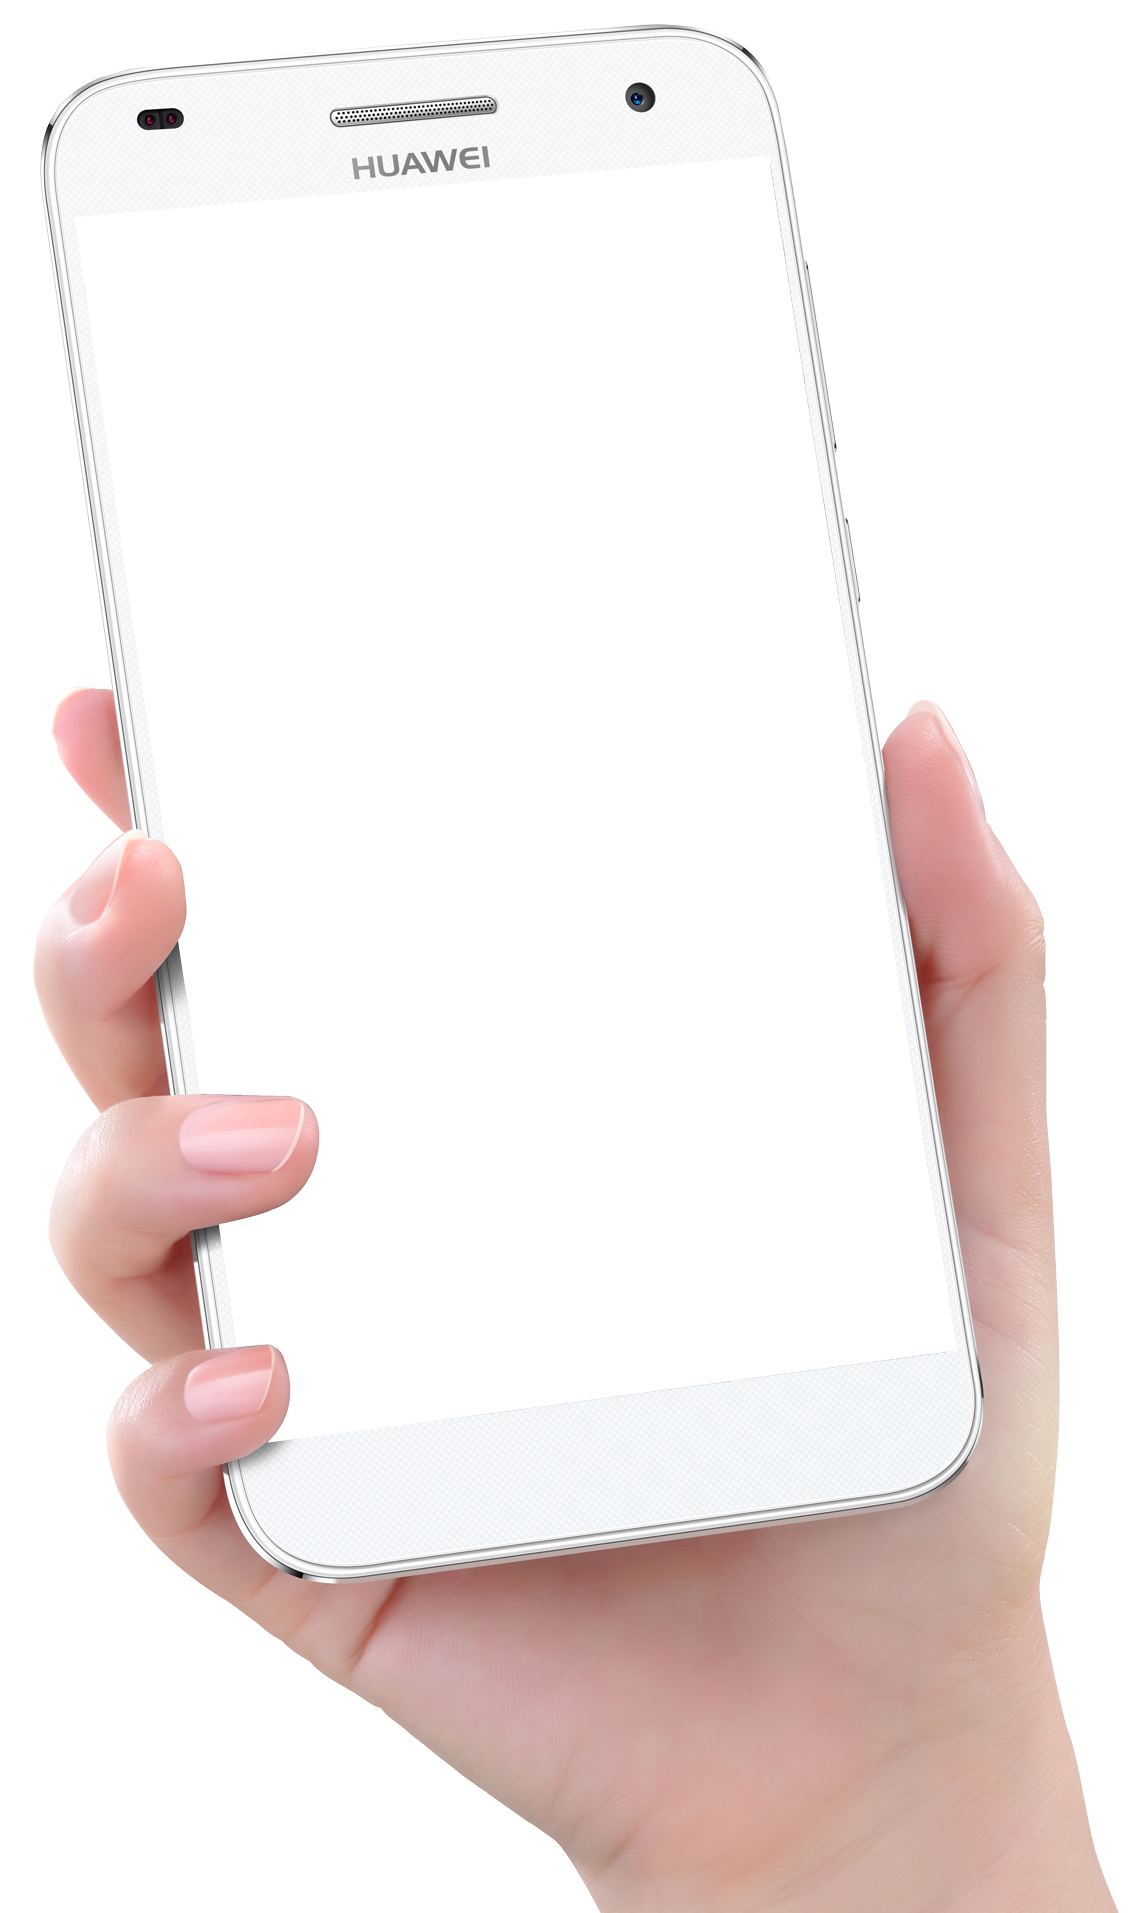 Hand holding png image. Hands clipart smartphone